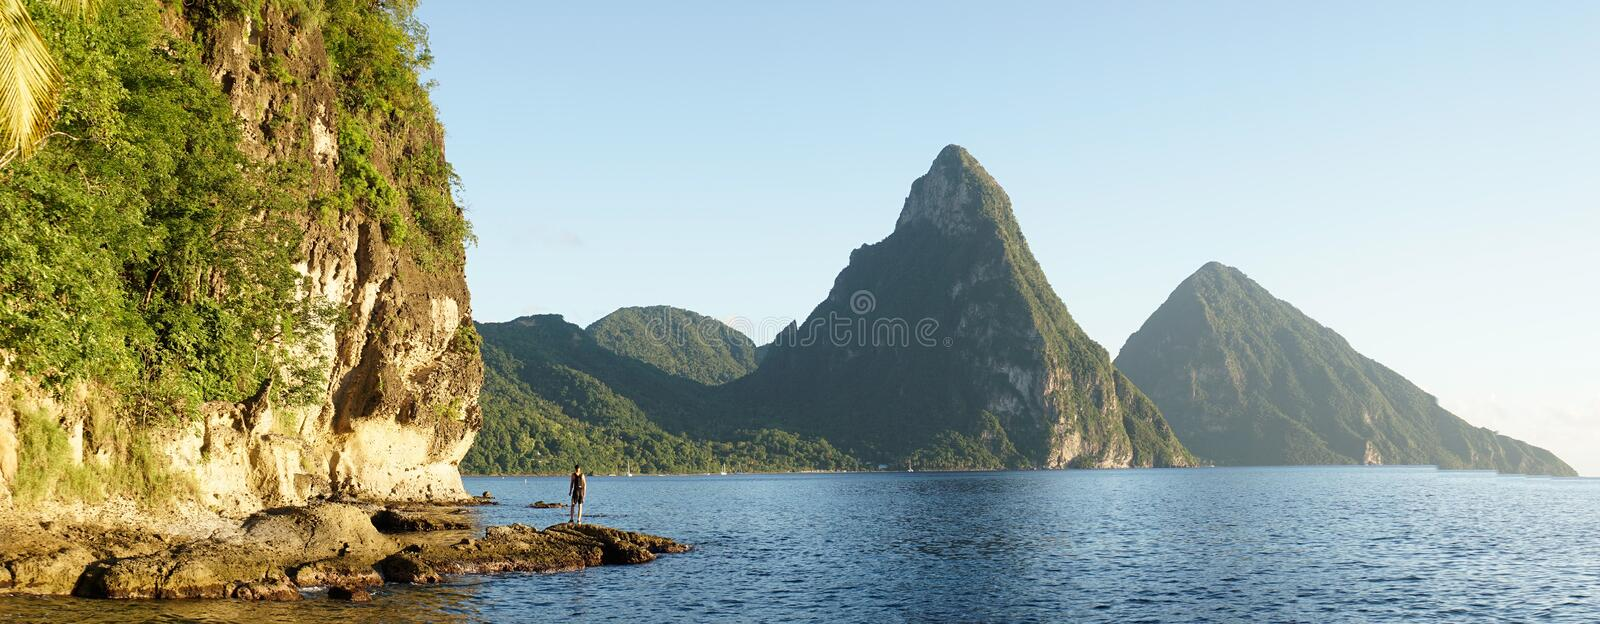 The Piton Mountains on the tropical Caribbean Island Saint Lucia.  royalty free stock images